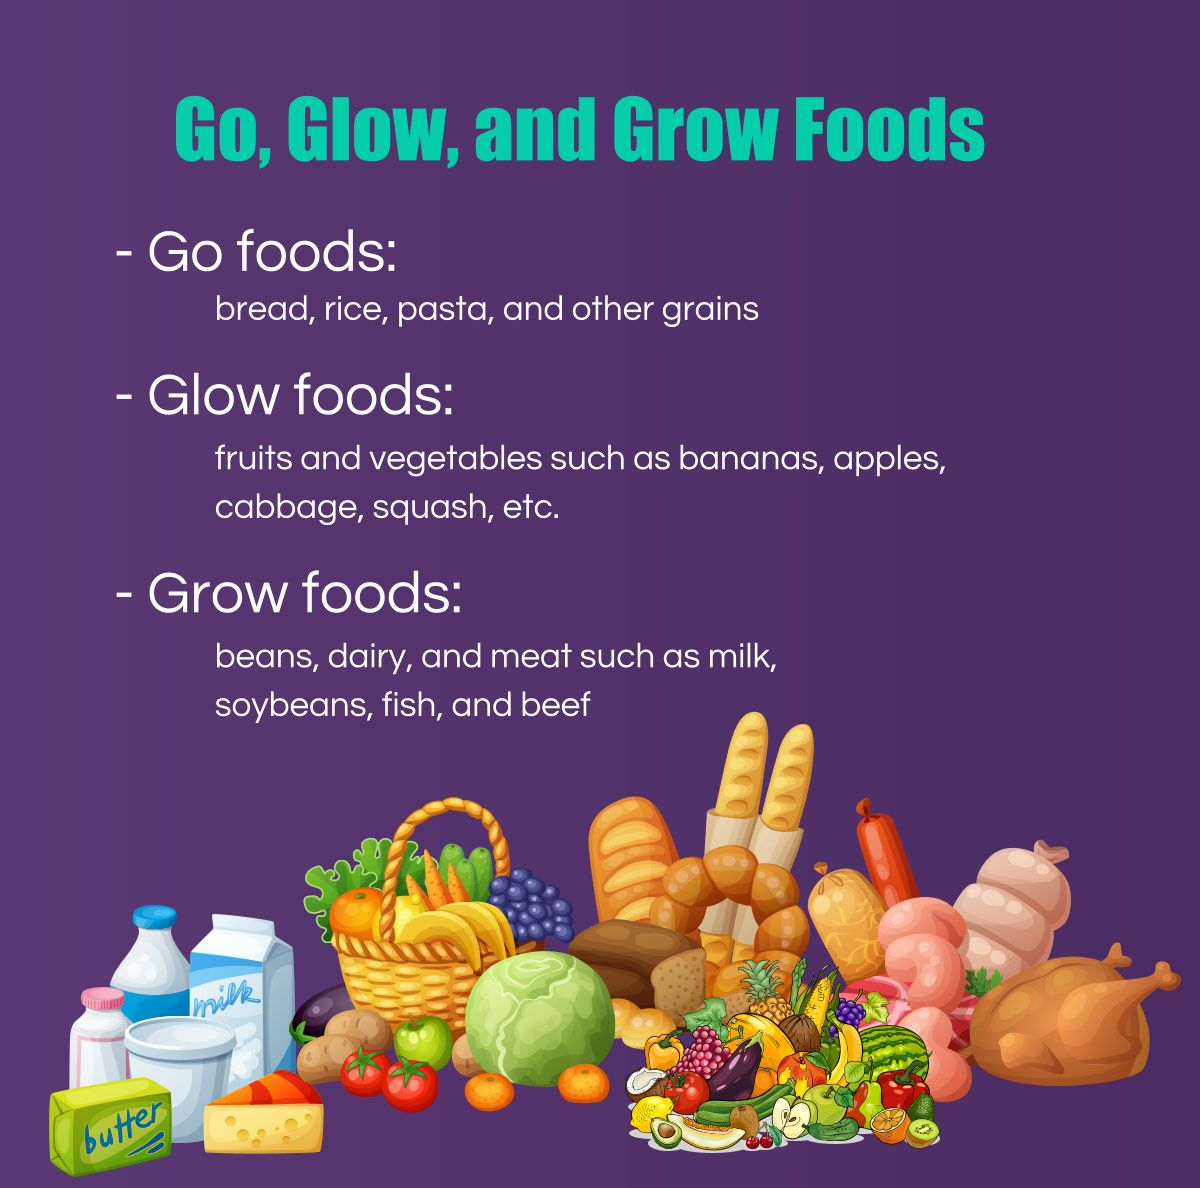 Go, Glow, and Grow Foods LittleLearnersLiteracyAcademy